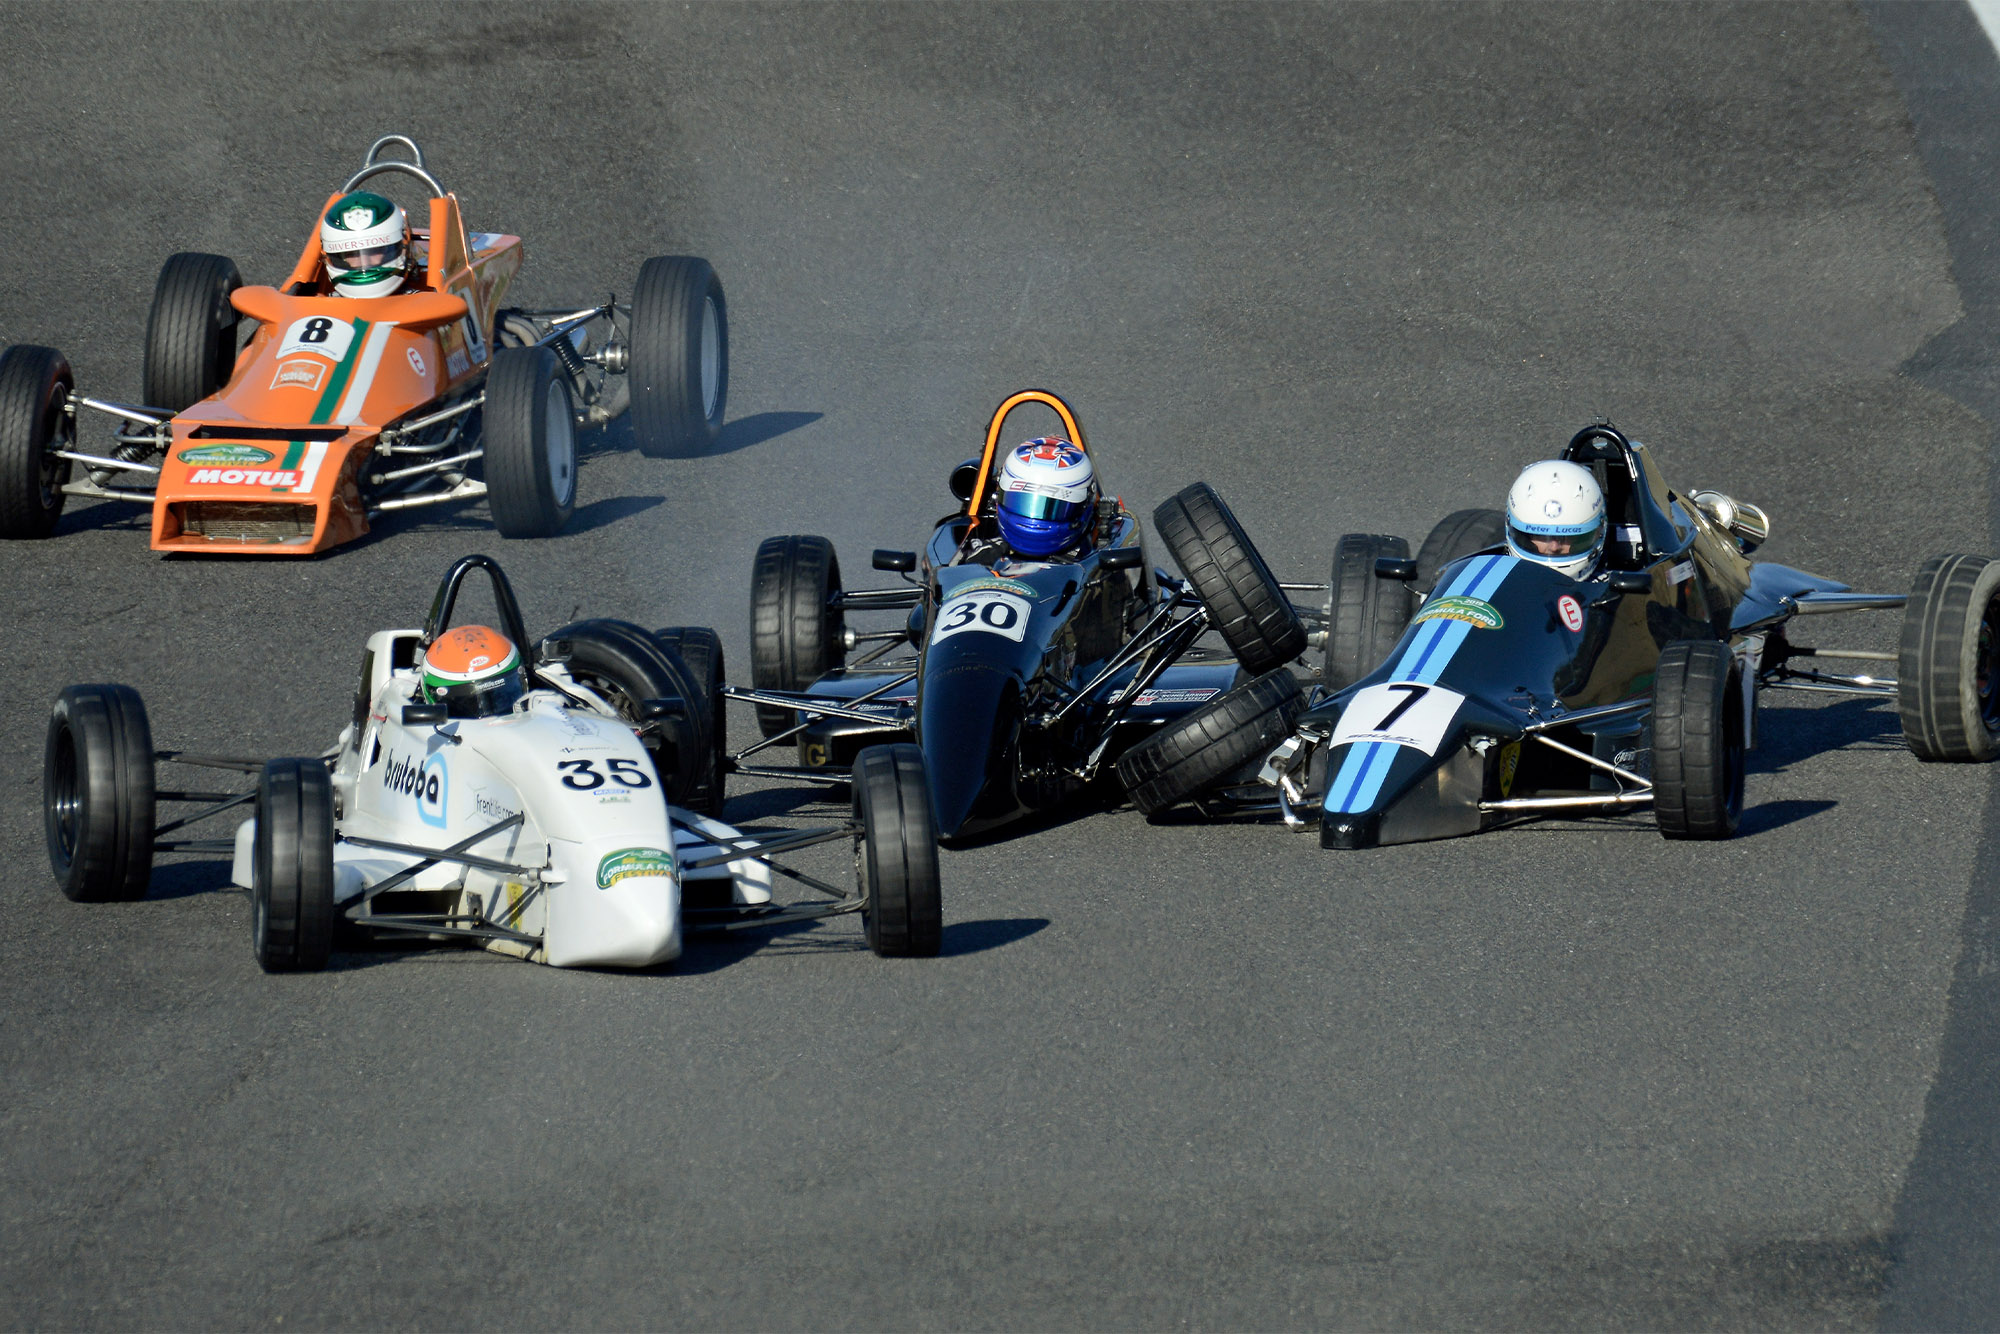 The 2019 Formula Ford Festival at Brands Hatch